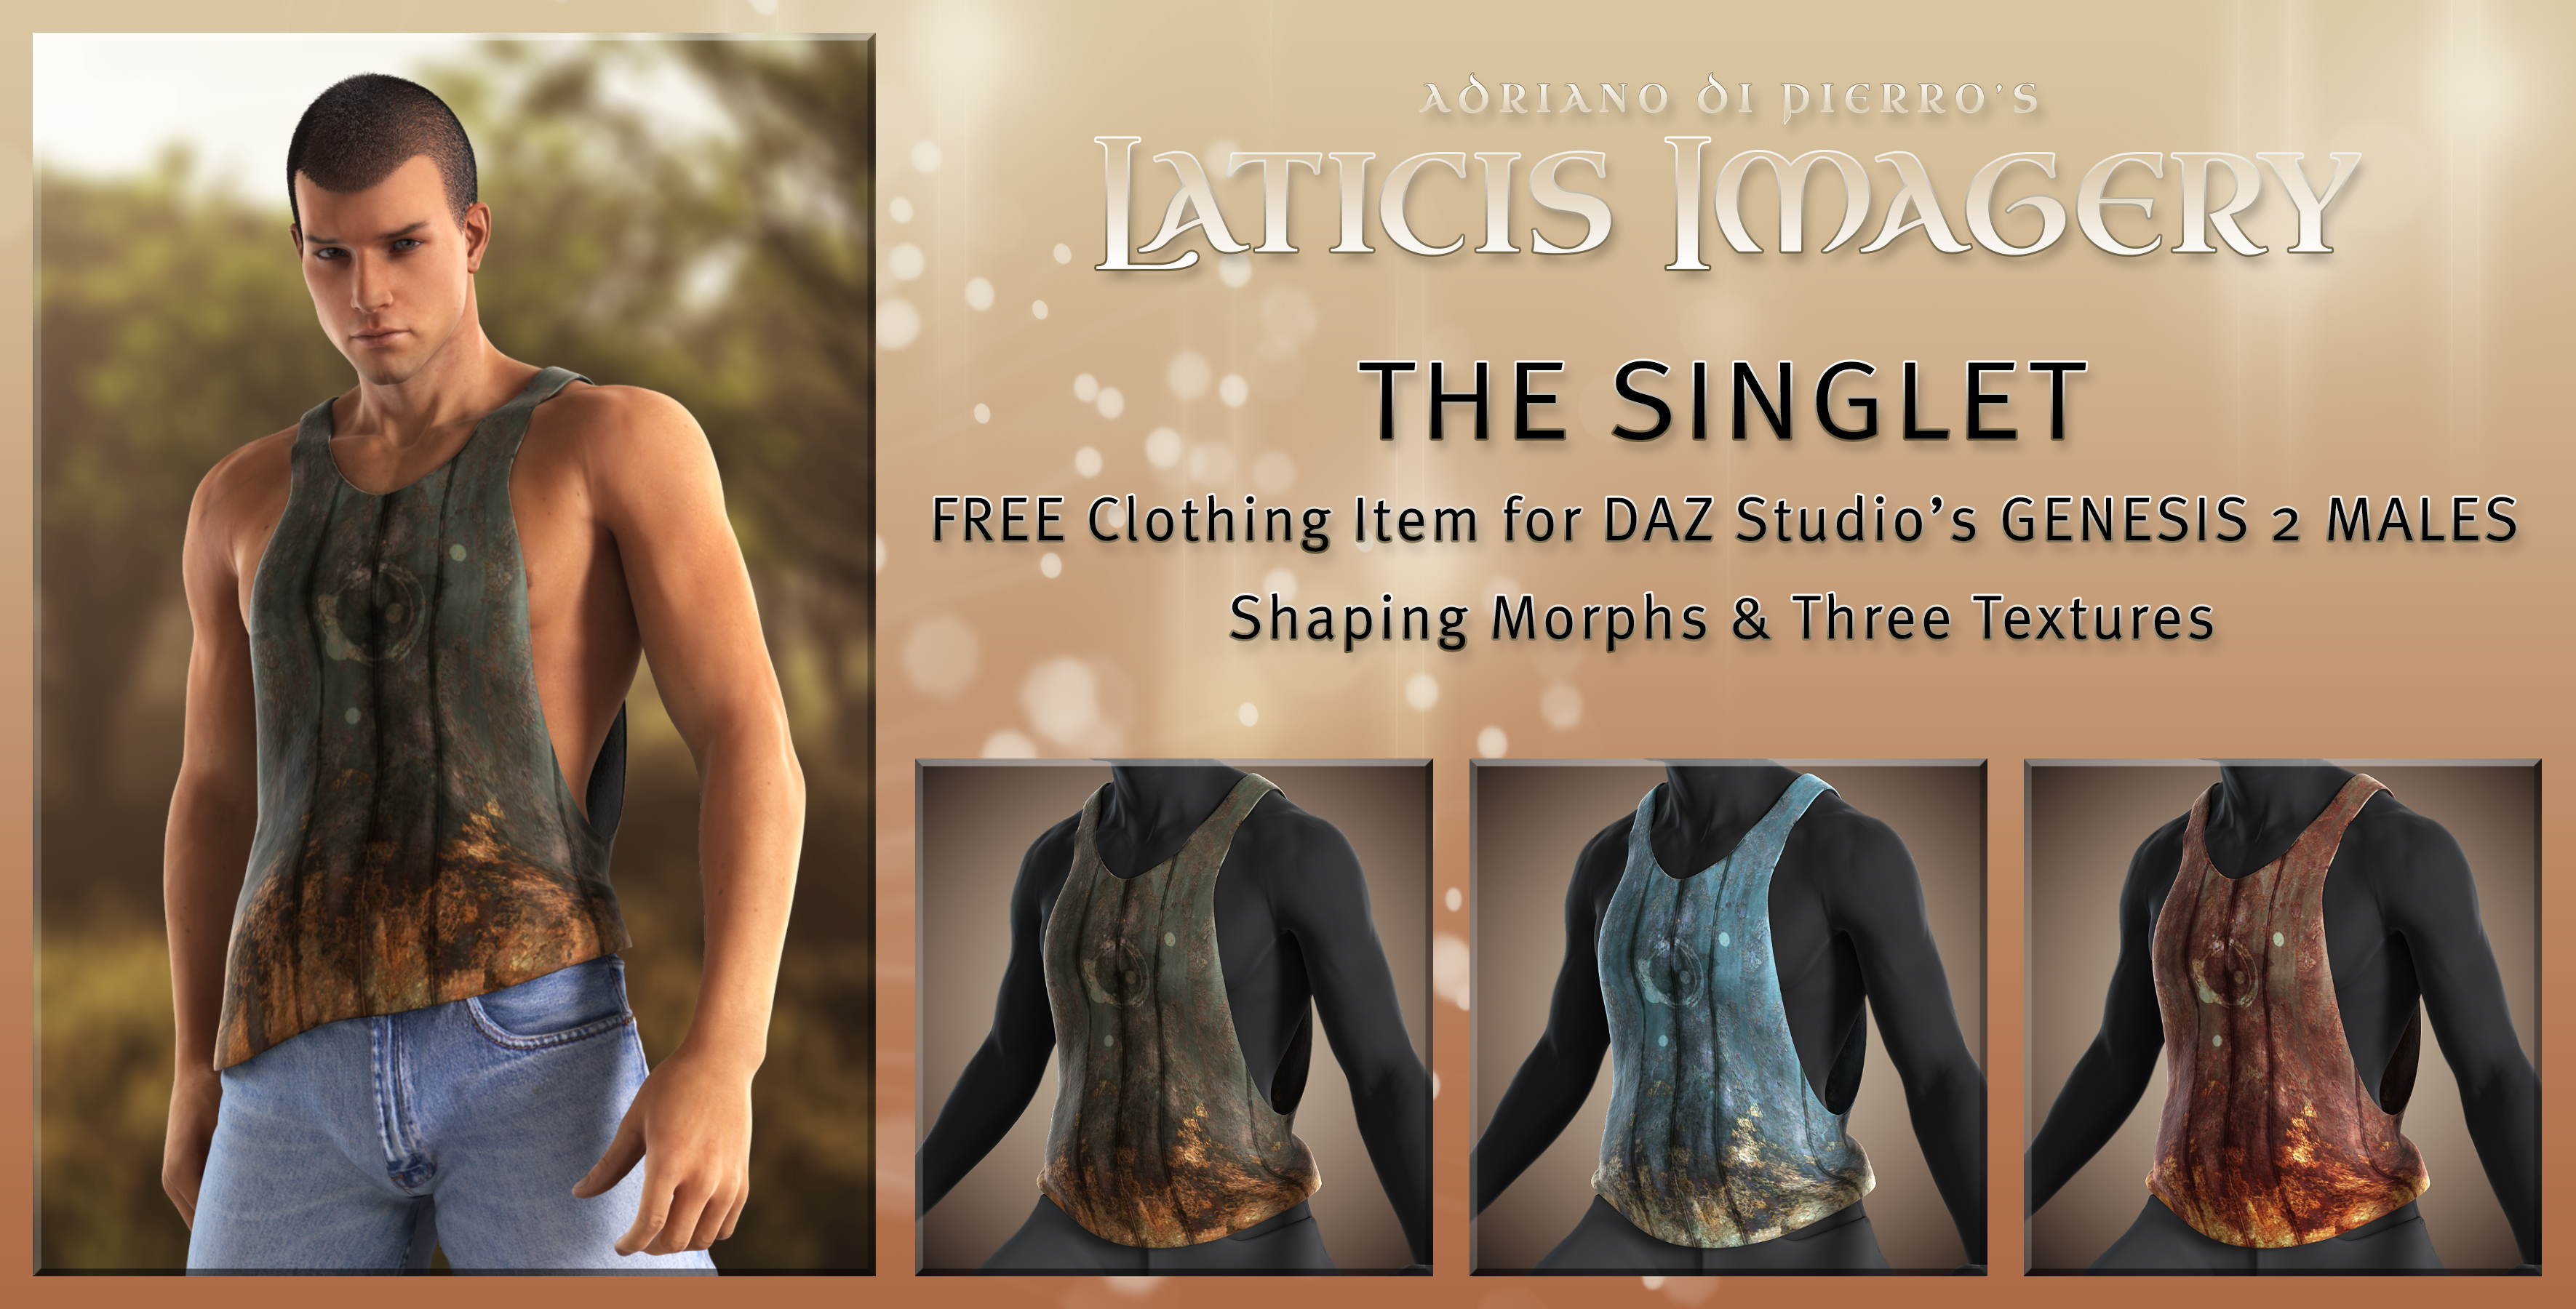 Laticis's FREE - The Singlet / Gen2 Male by Laticis